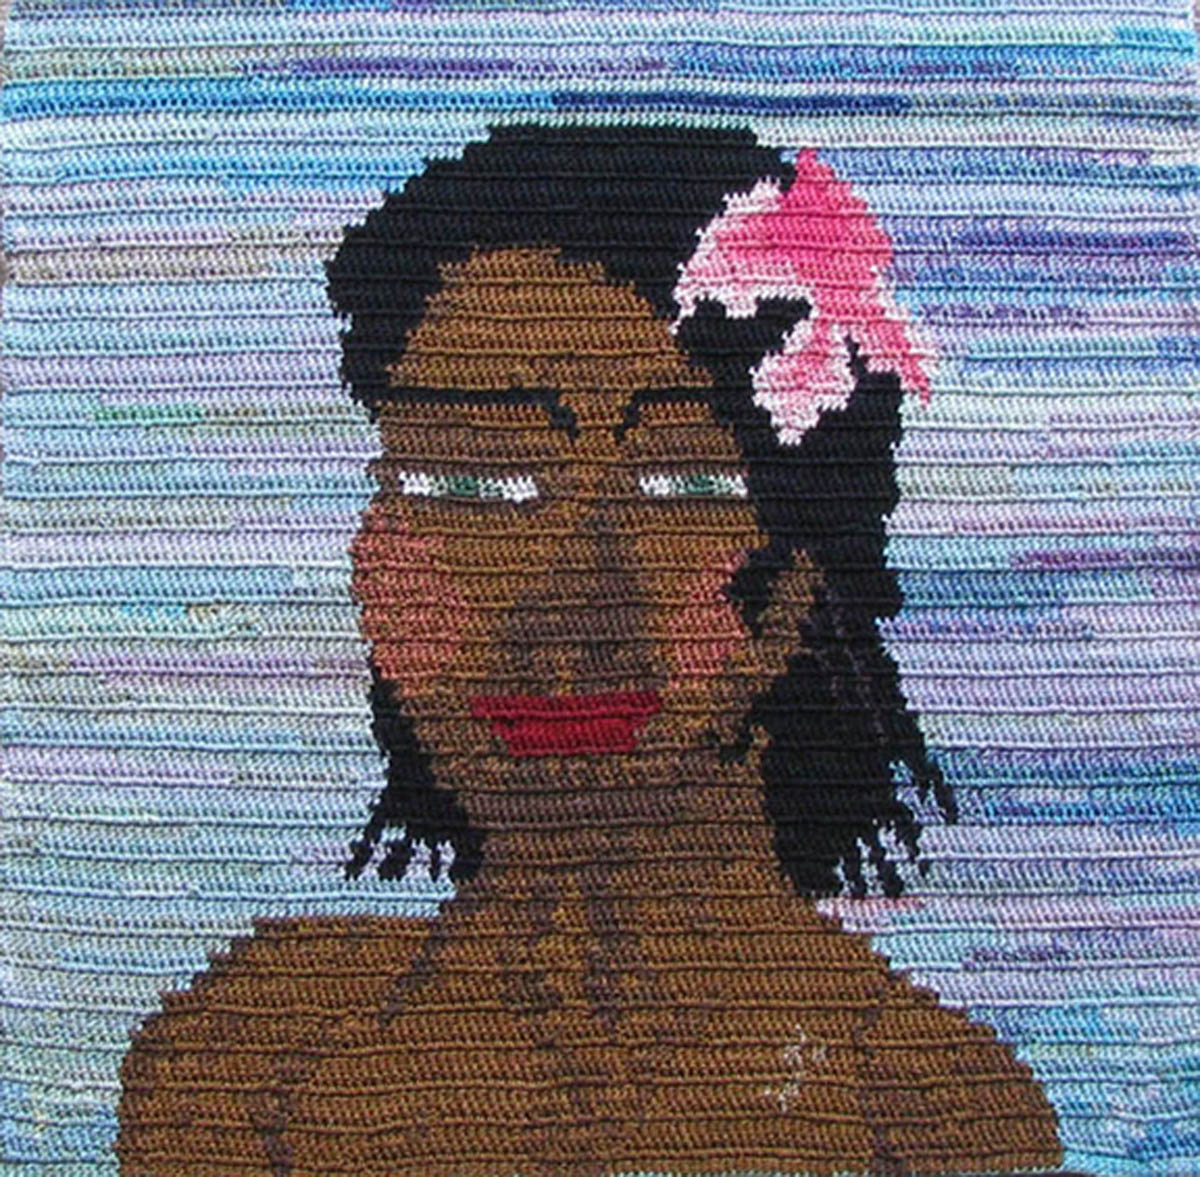 Lady with a Flower in Her Hair